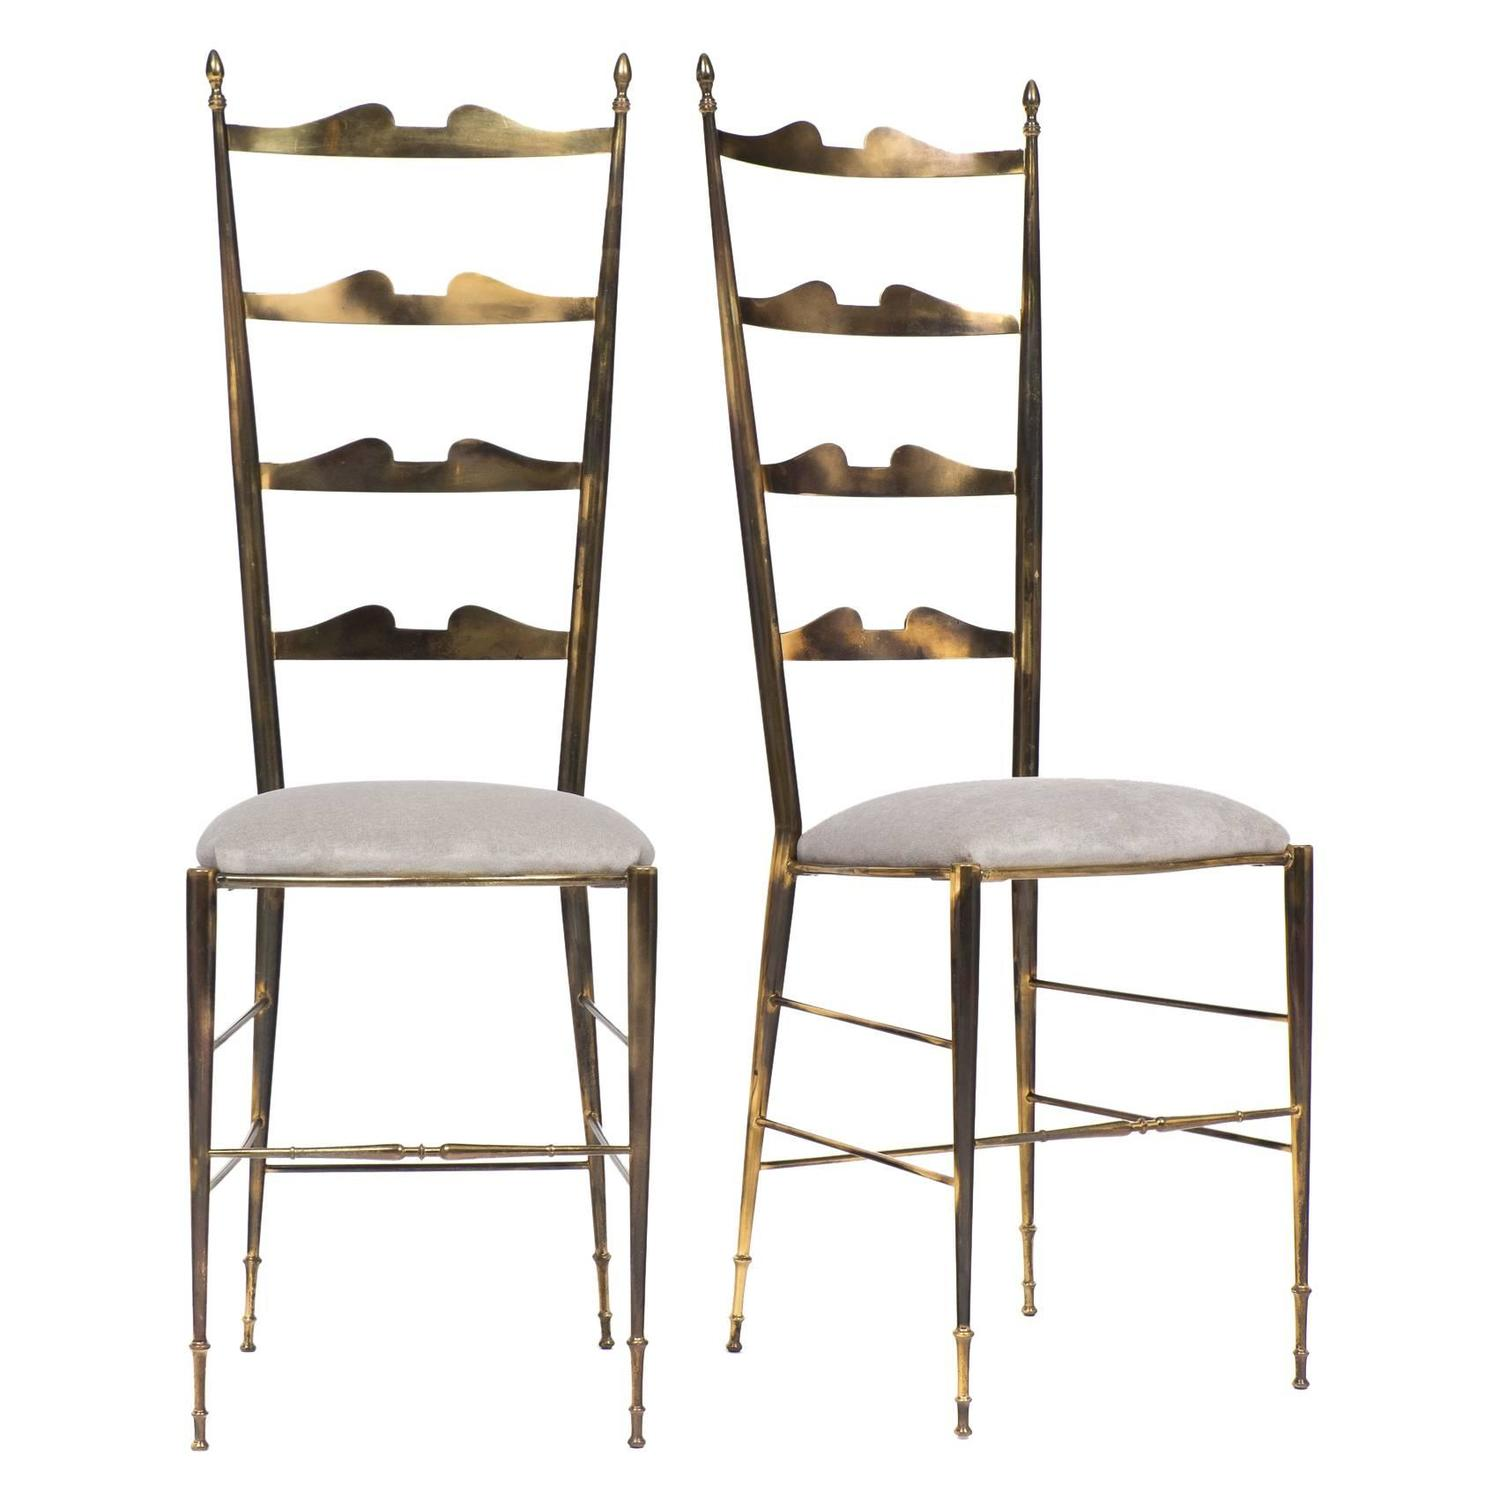 Rare Vintage Pair of Brass Chiavari Chairs at 1stdibs